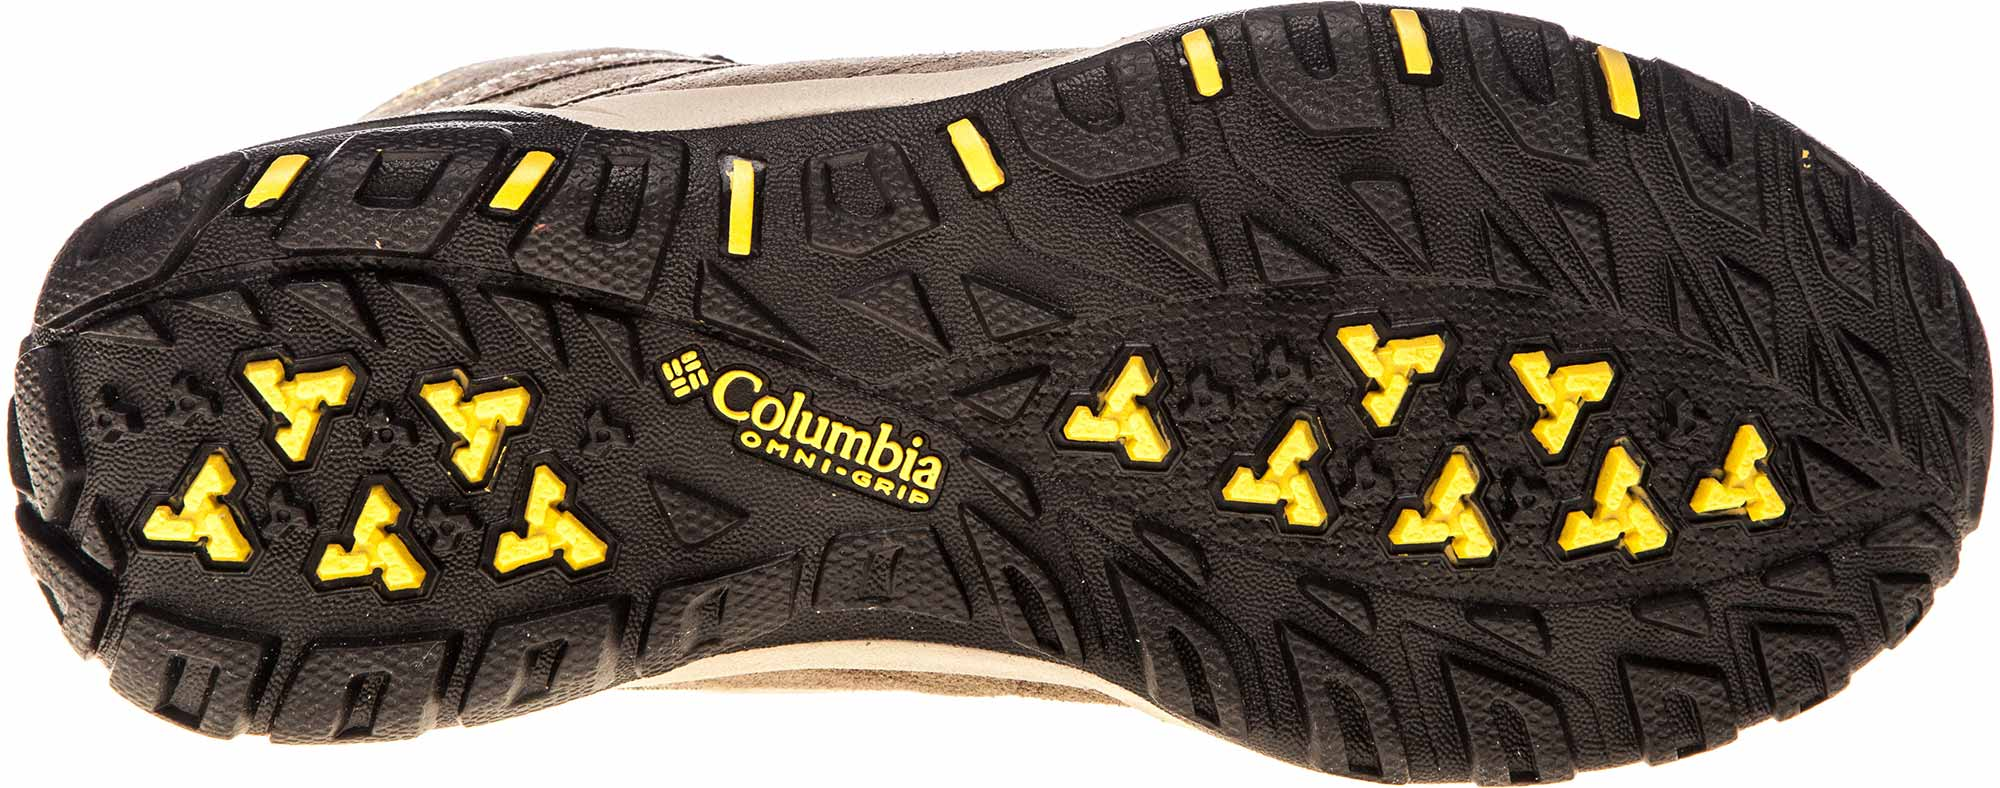 987c705a6de Columbia MINX FIRE MID WATERPROOF